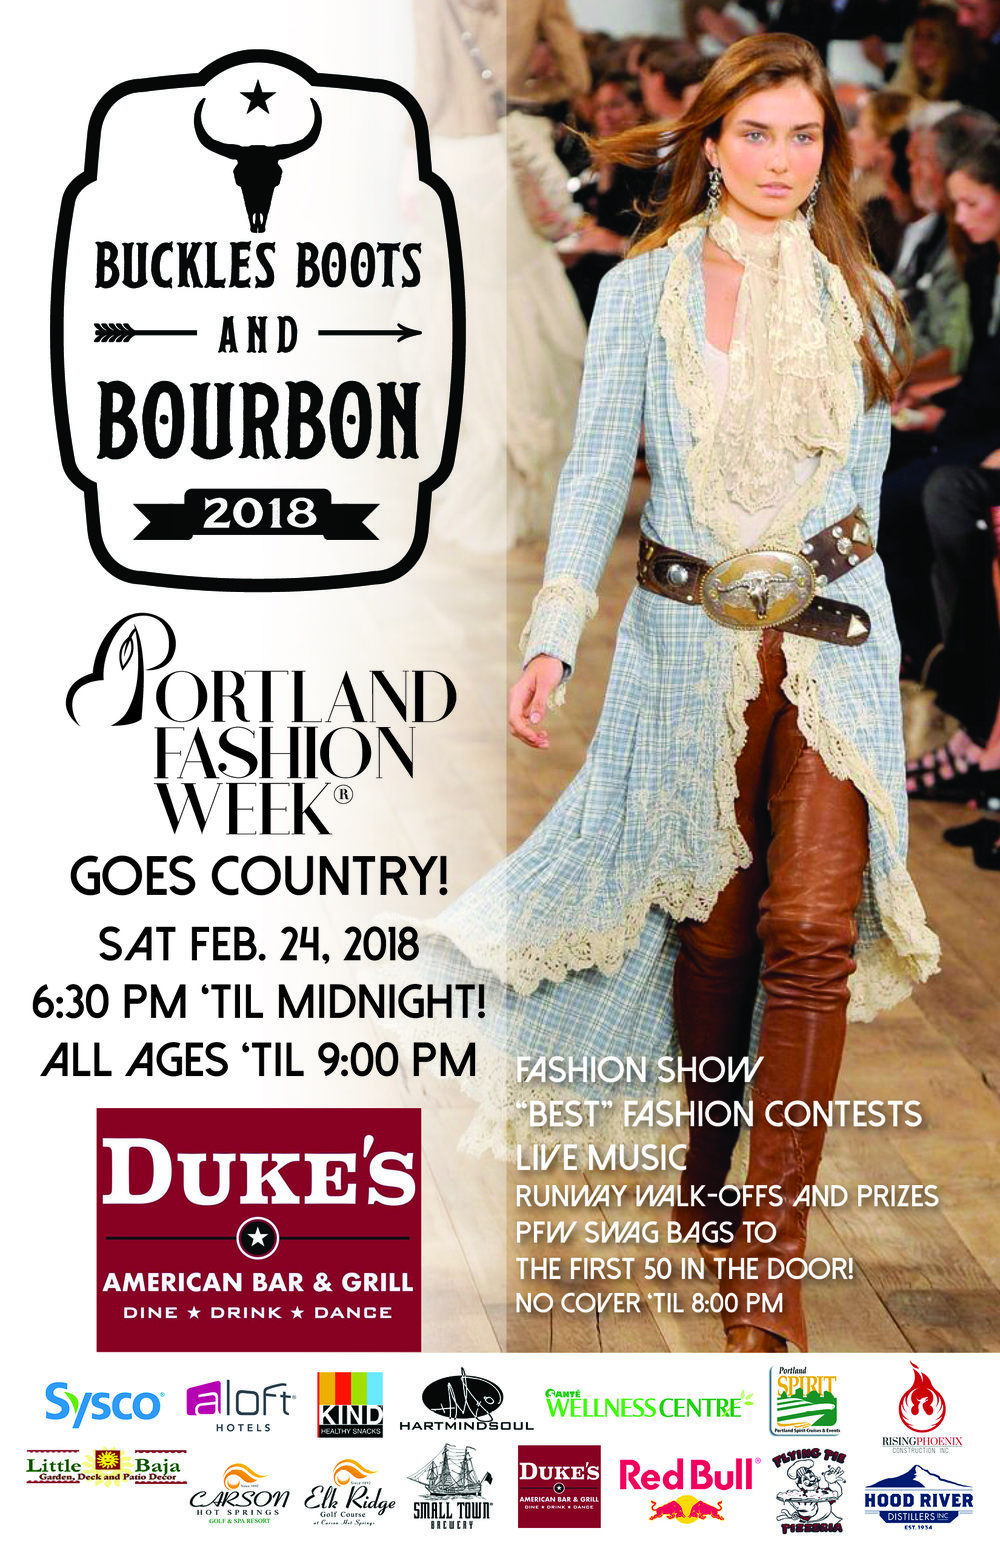 Buckles Boots and Bourbon 2018 hosted by Fiona Foulk